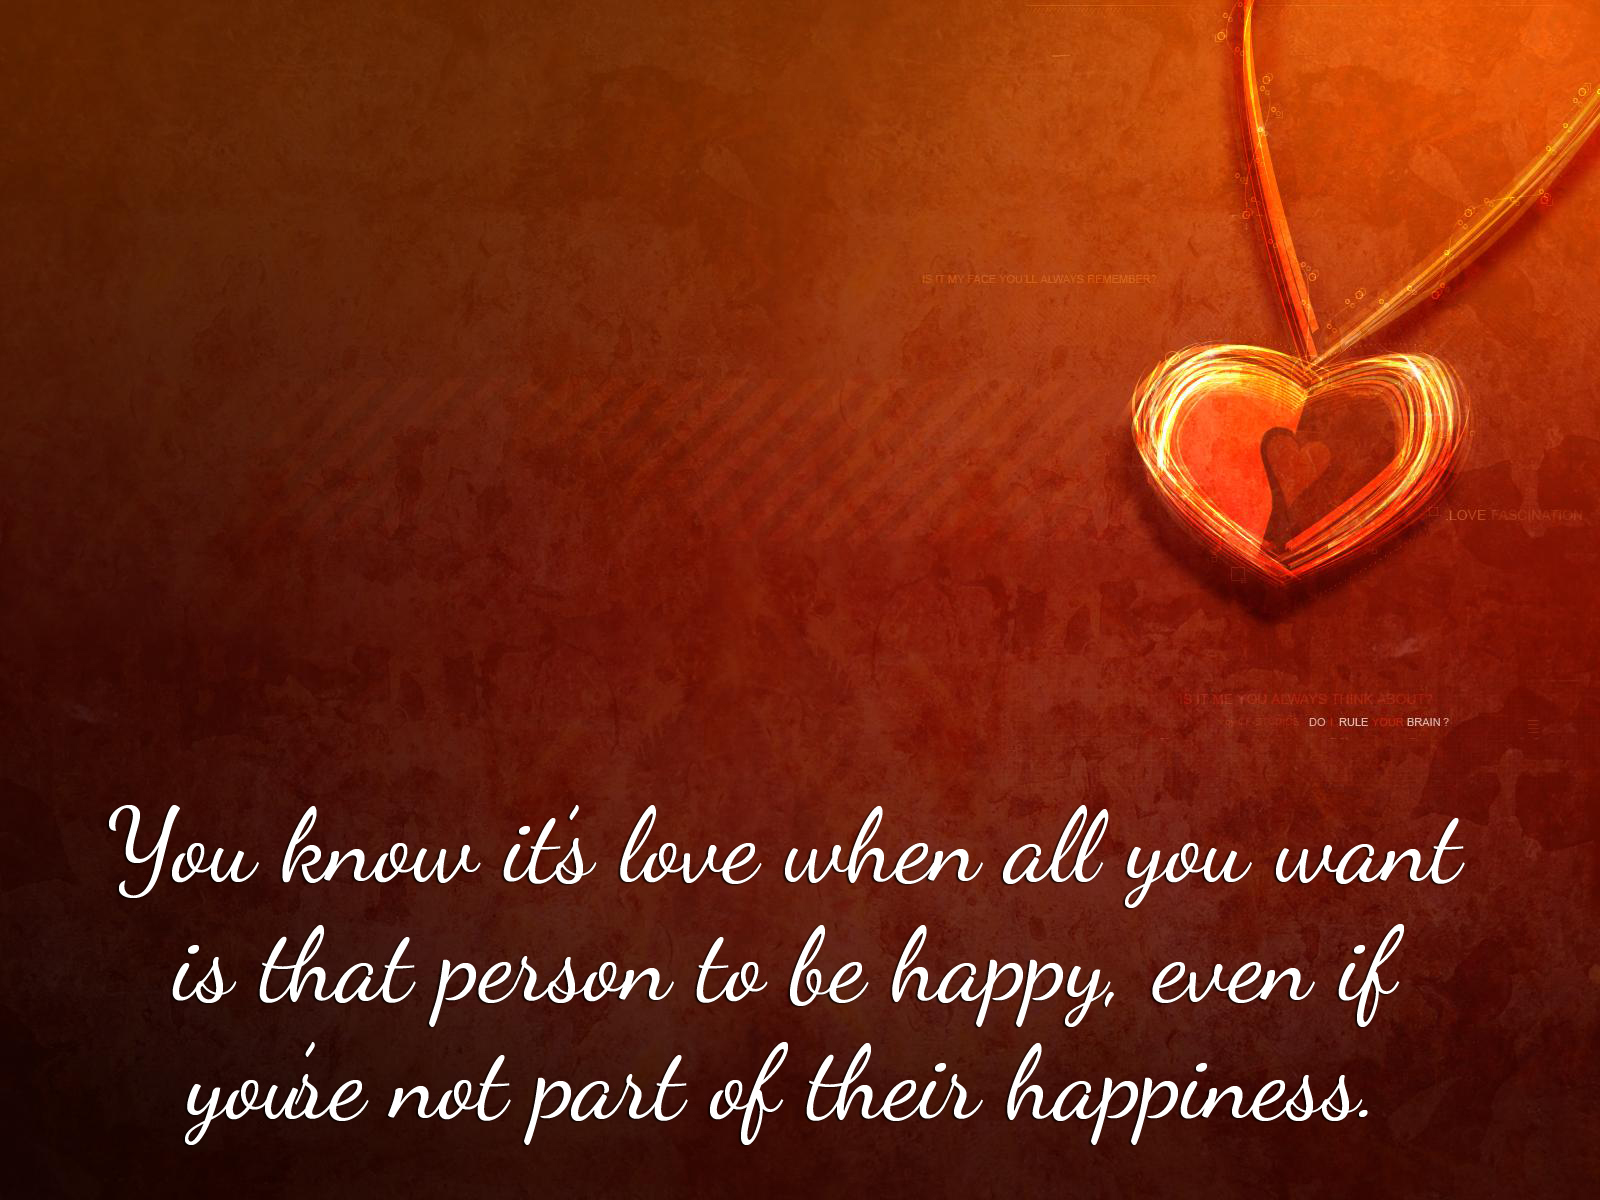 Google Love Quotes Love Quotes Wallpapers Android Apps On Google Play 1600X1200